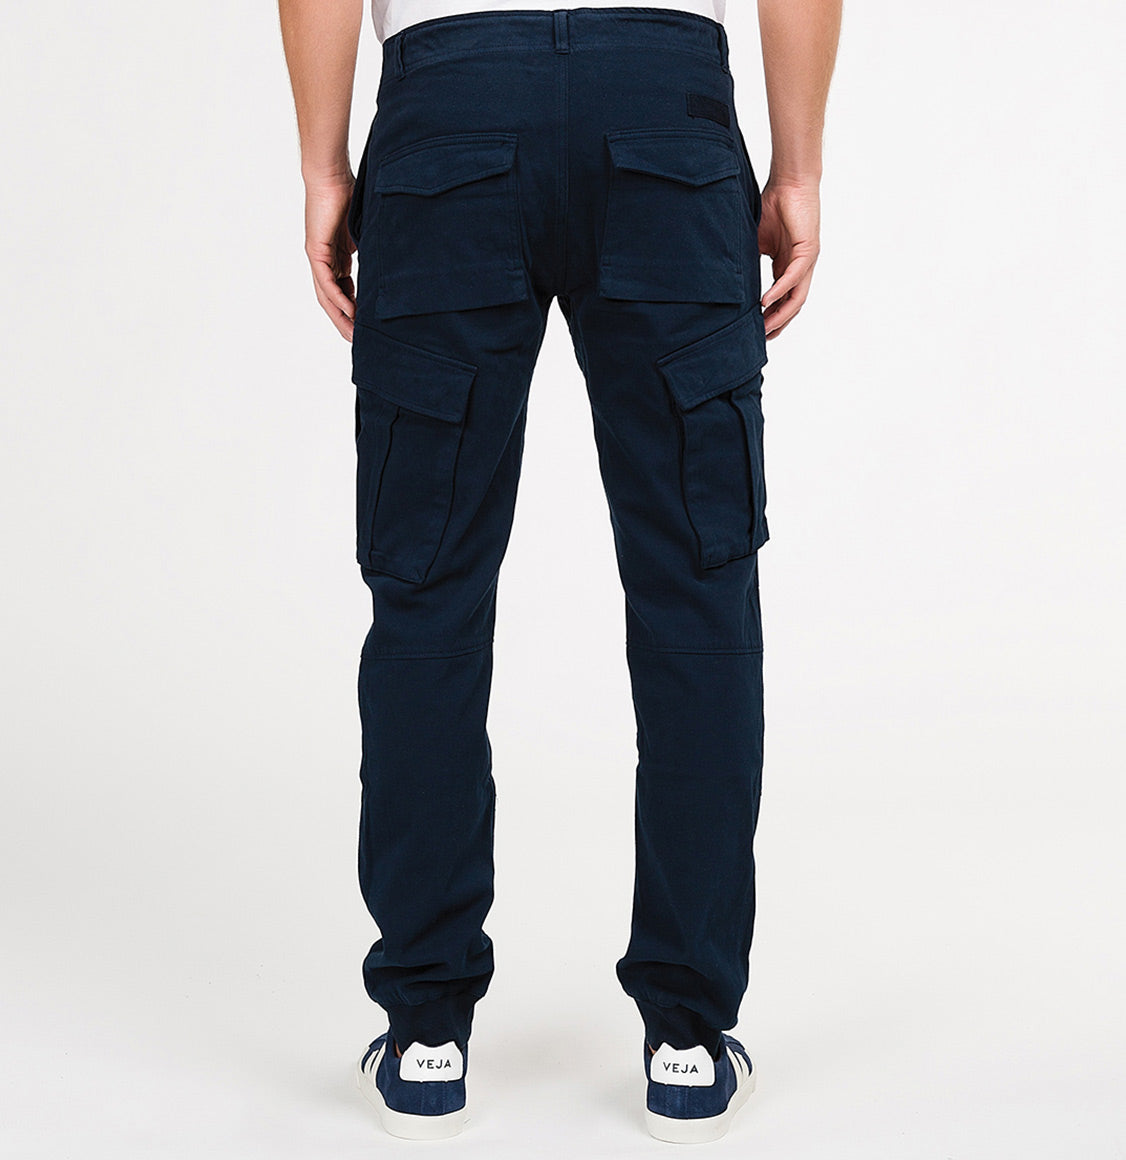 Cargo Cotton Light Weight Pants Navy Blue | The Project Garments - B